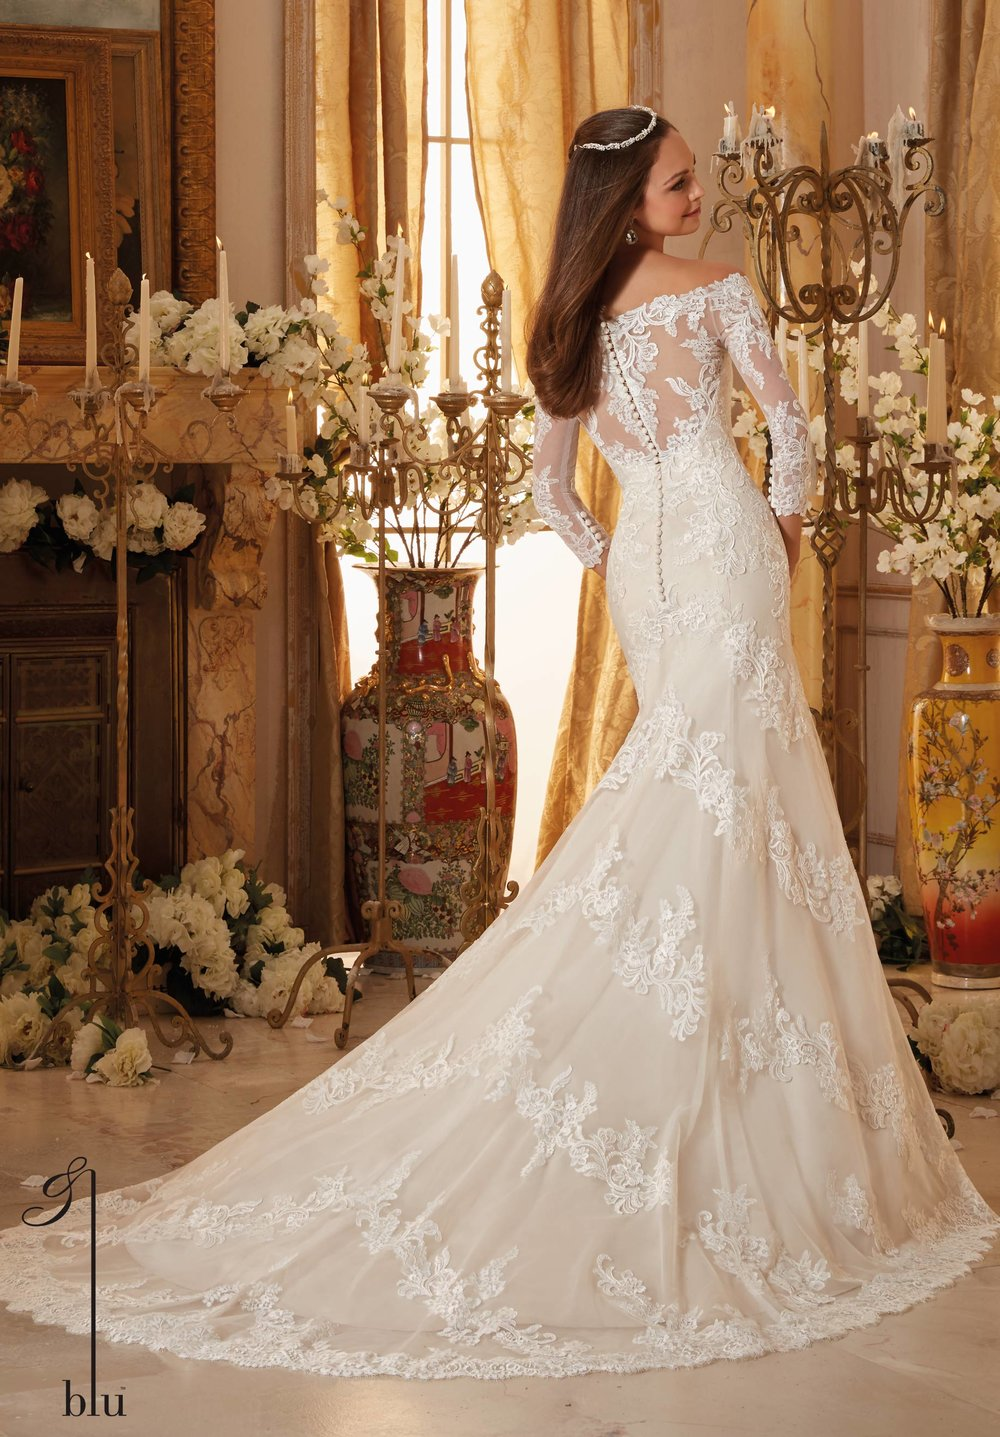 Chantilly lace Mori Lee bridal wedding dress